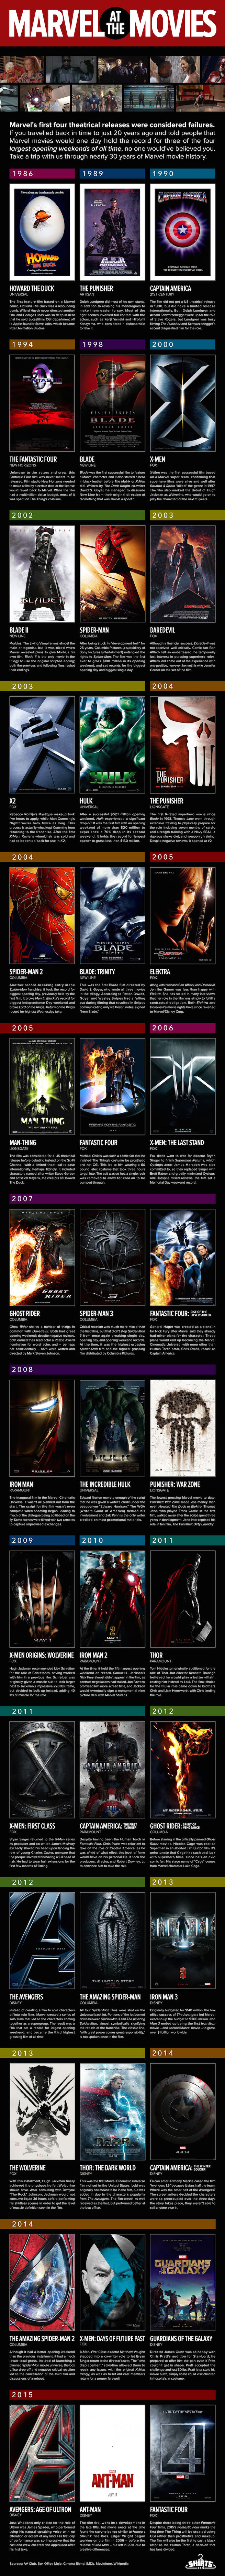 marvel-movies-infographic-144814